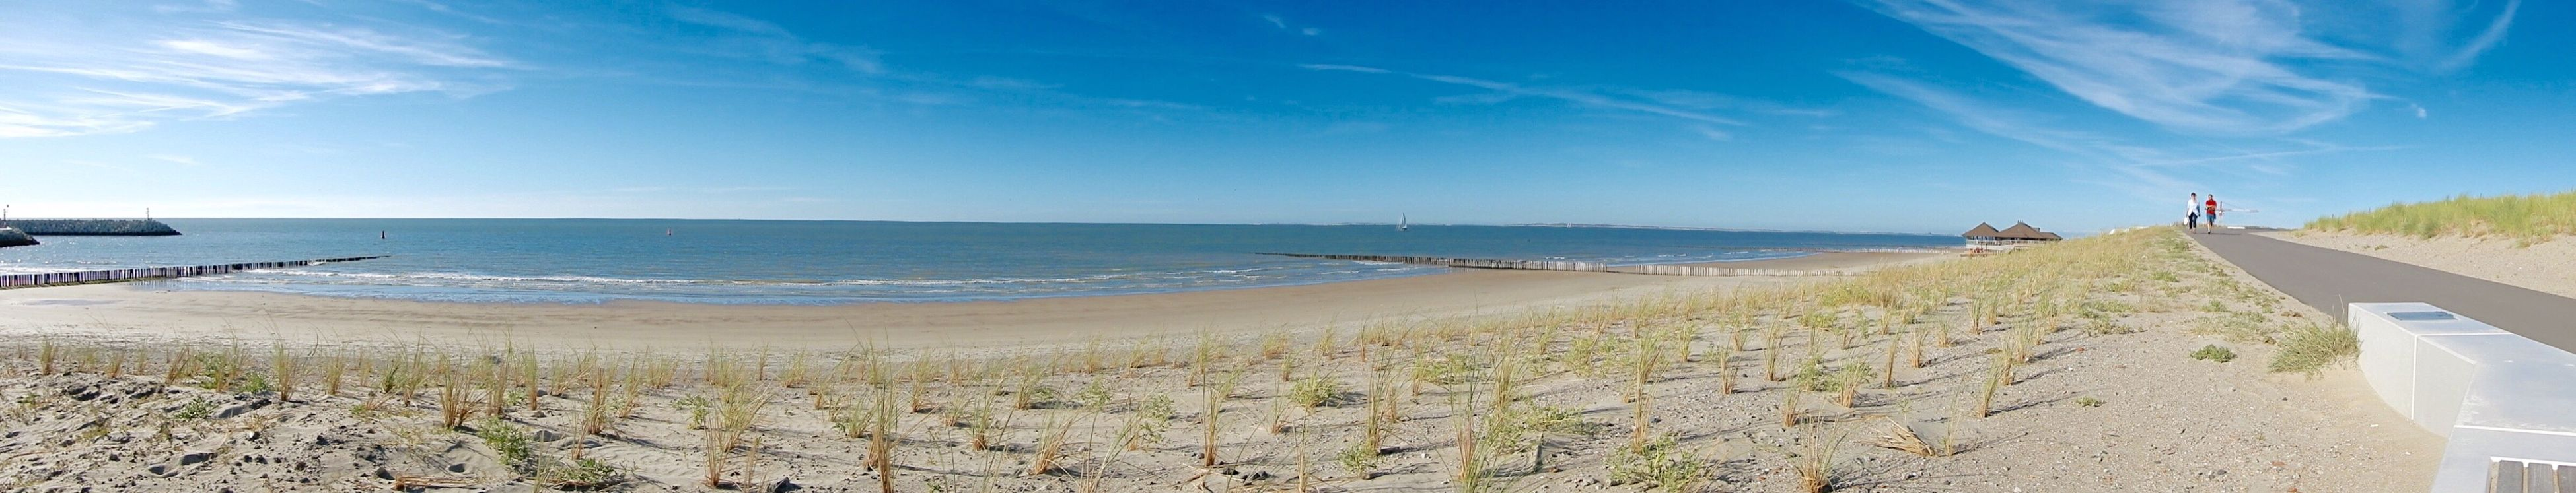 Strand Cadzand-bad Holland Sea Beach Sand Horizon Over Water Nature Beauty In Nature Scenics Tranquil Scene Water Tranquility Sky Day Outdoors Vacations Blue Real People Marram Grass Men Fish-eye Lens One Person Holland Landscape Holiday Wide Angle Panorama